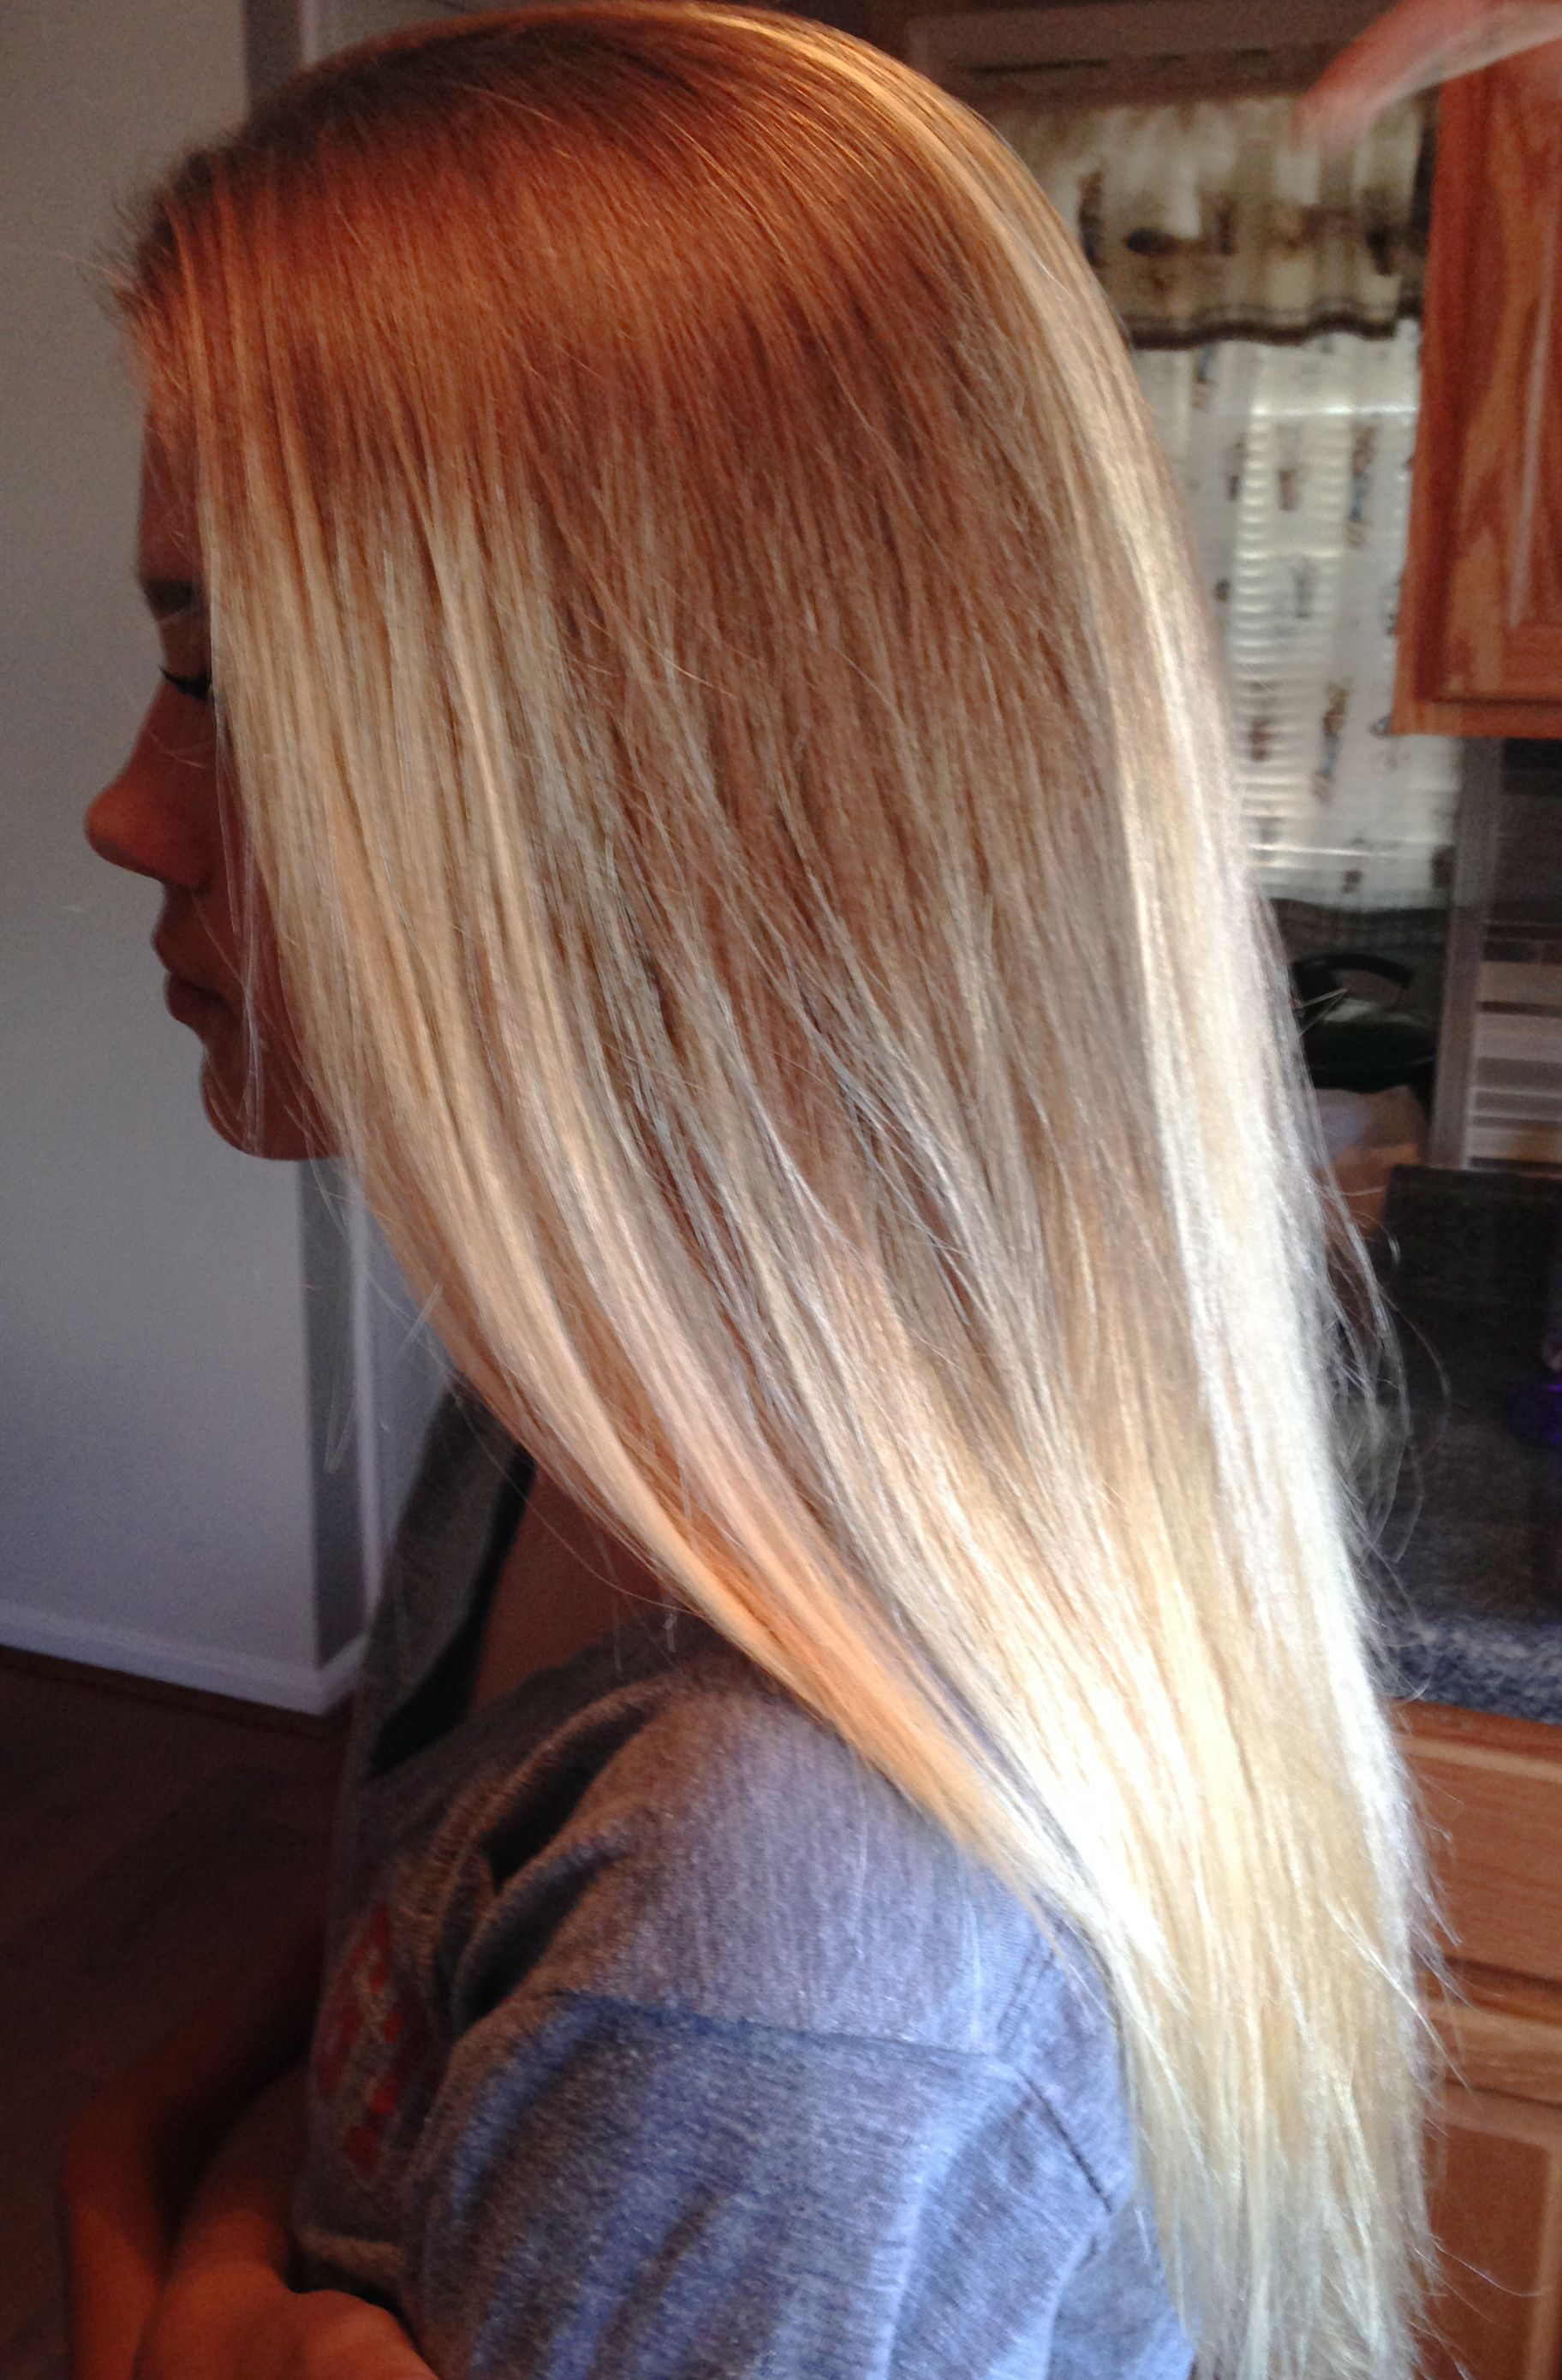 Diy ombre hair using ion supplies found at sallys beauty hair diy ombre hair using ion supplies found at sallys beauty solutioingenieria Image collections